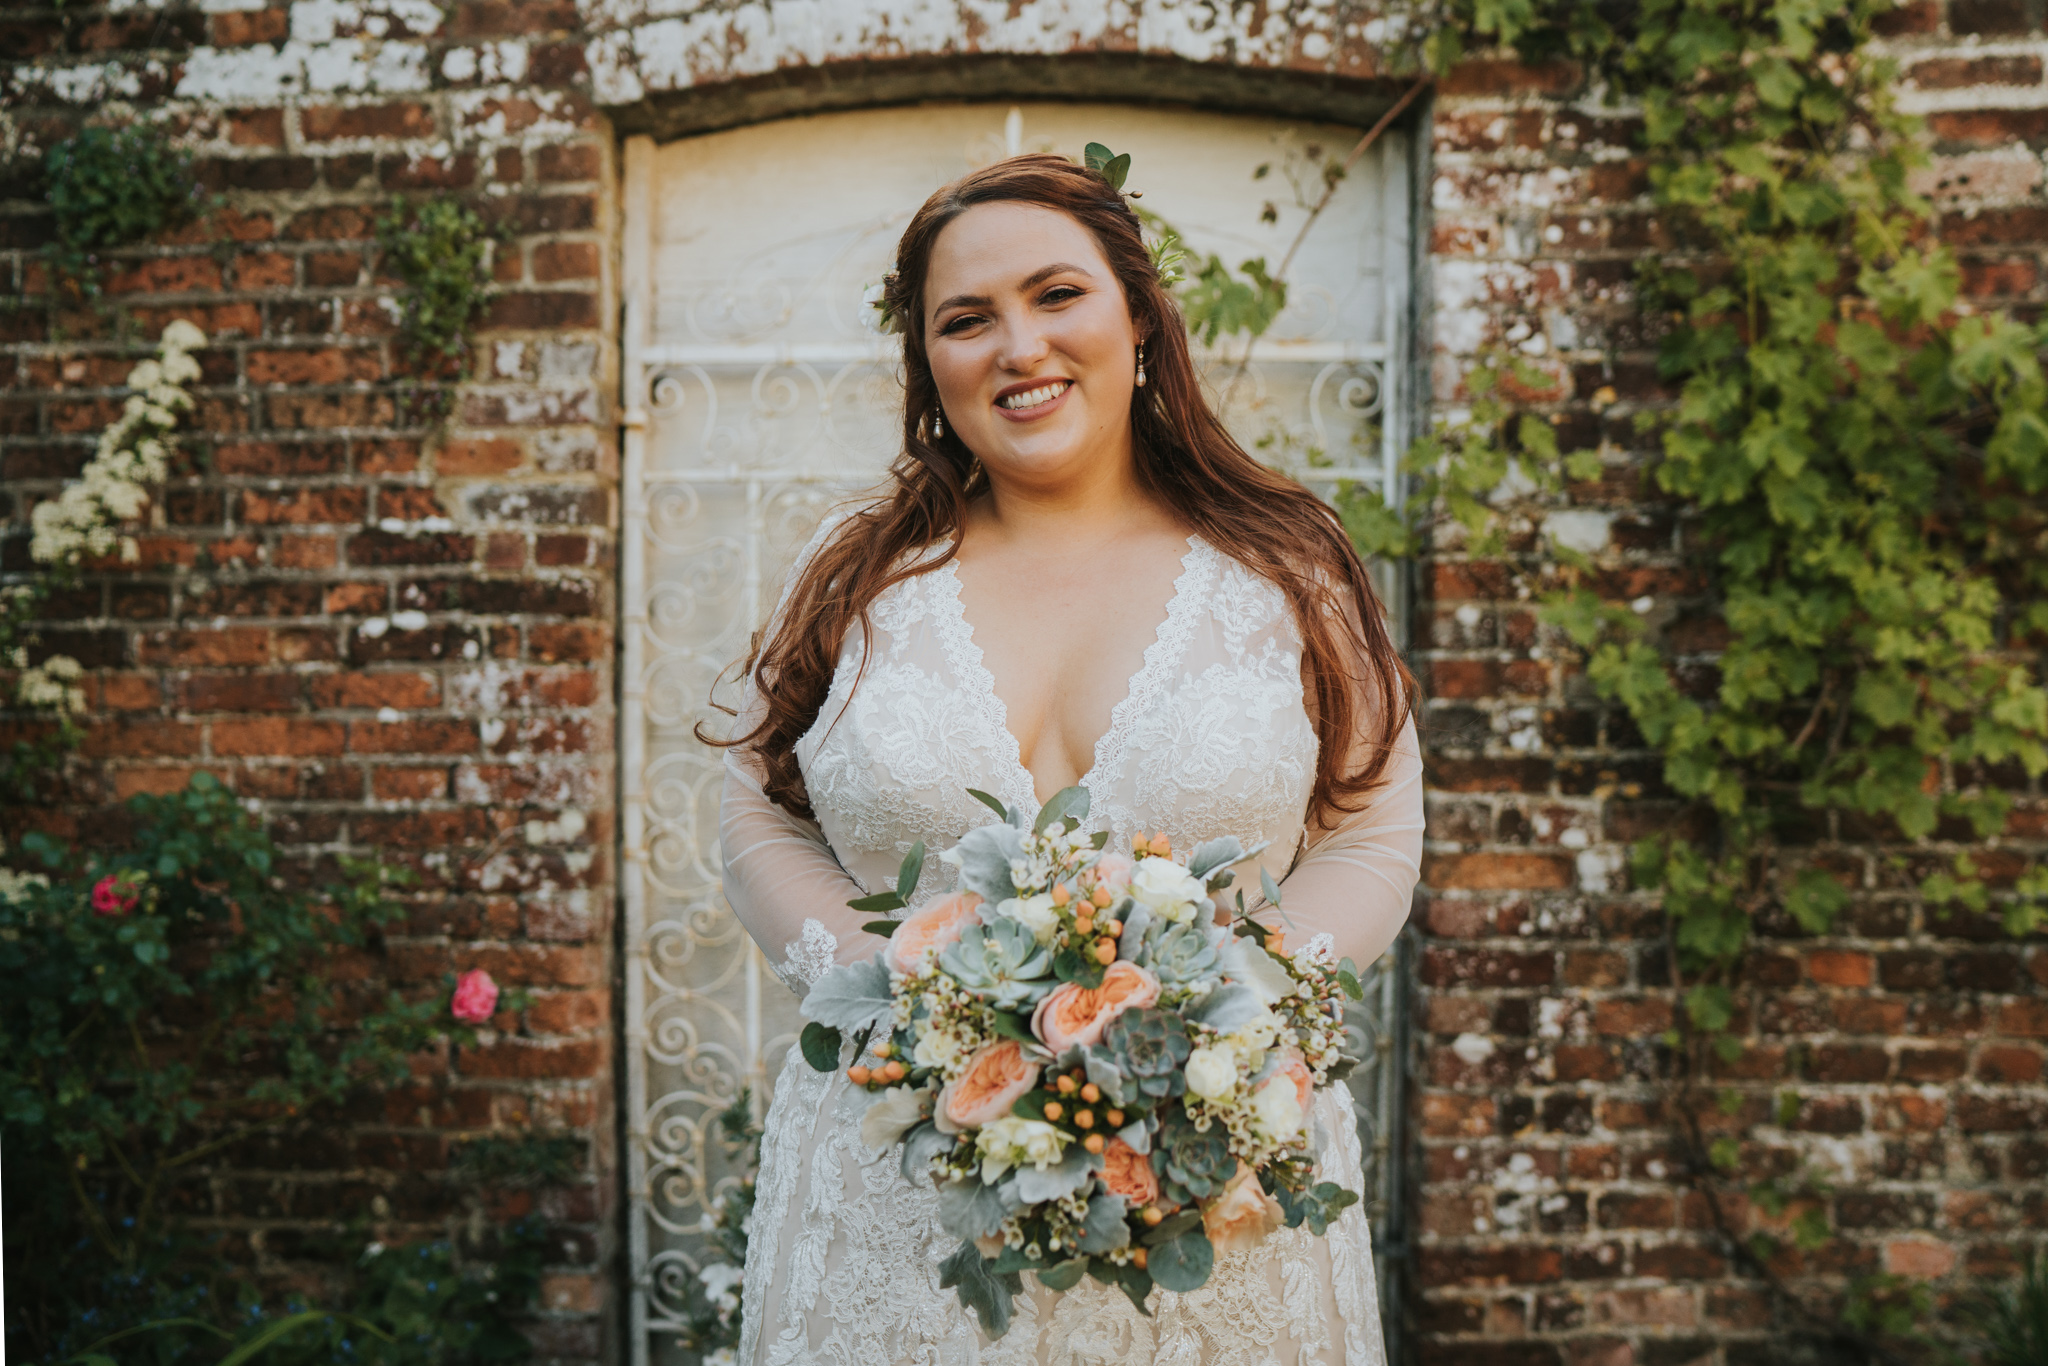 hayley-sam-secret-garden-kent-boho-wedding-grace-elizabeth-colchester-essex-alternative-wedding-photographer-essex-suffolk-norfolk-devon (31 of 36).jpg